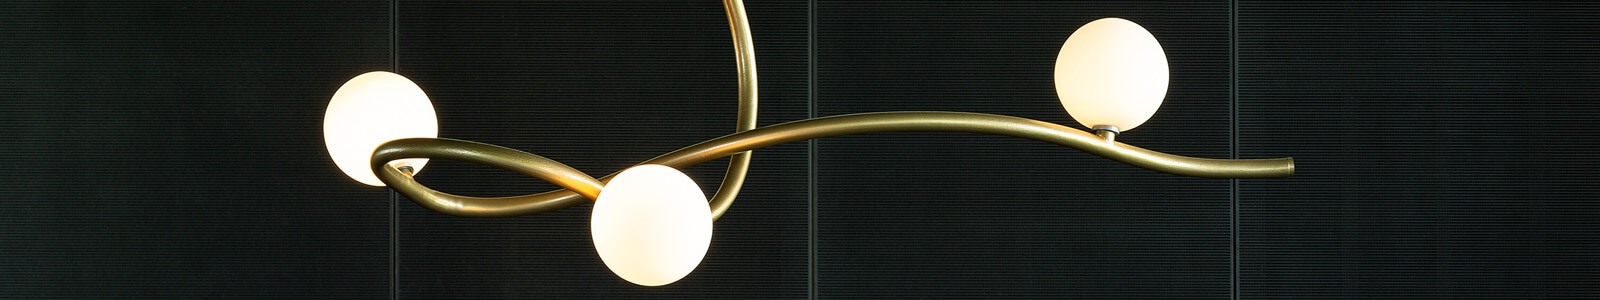 Hubbardton Forge Lighting Banner